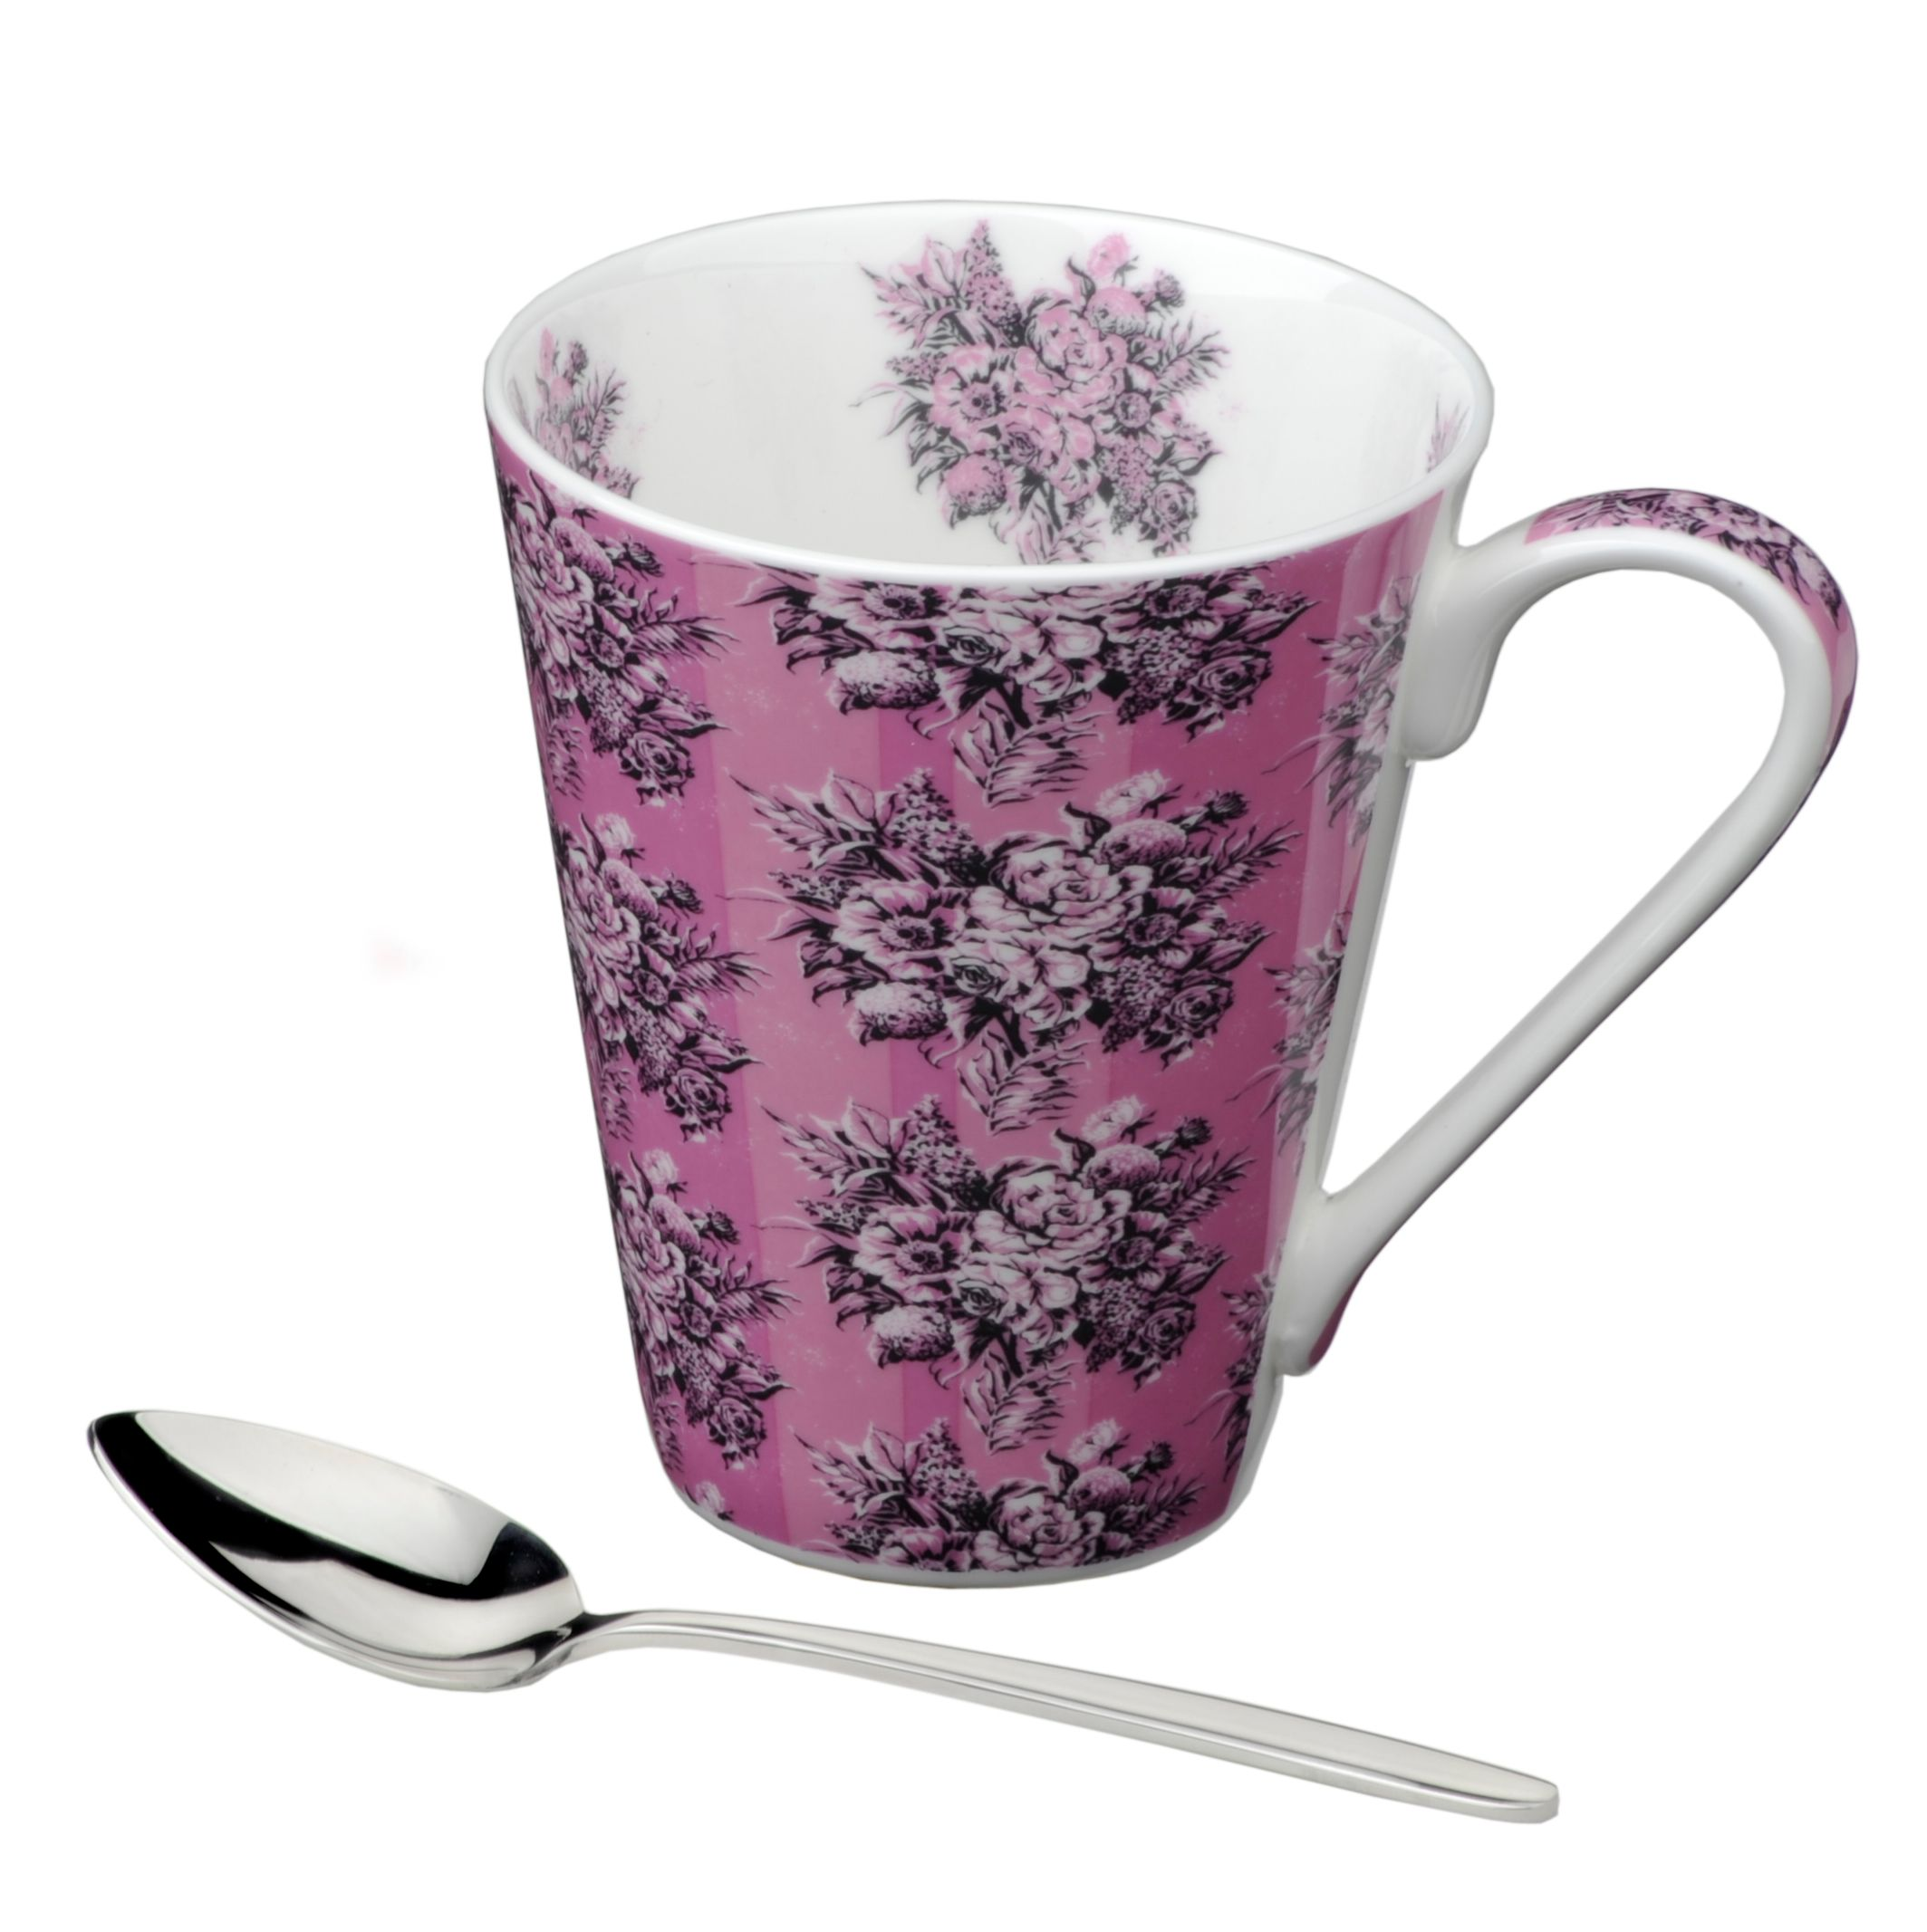 Llewelyn Bowen bone china mug & spoon Decolletage